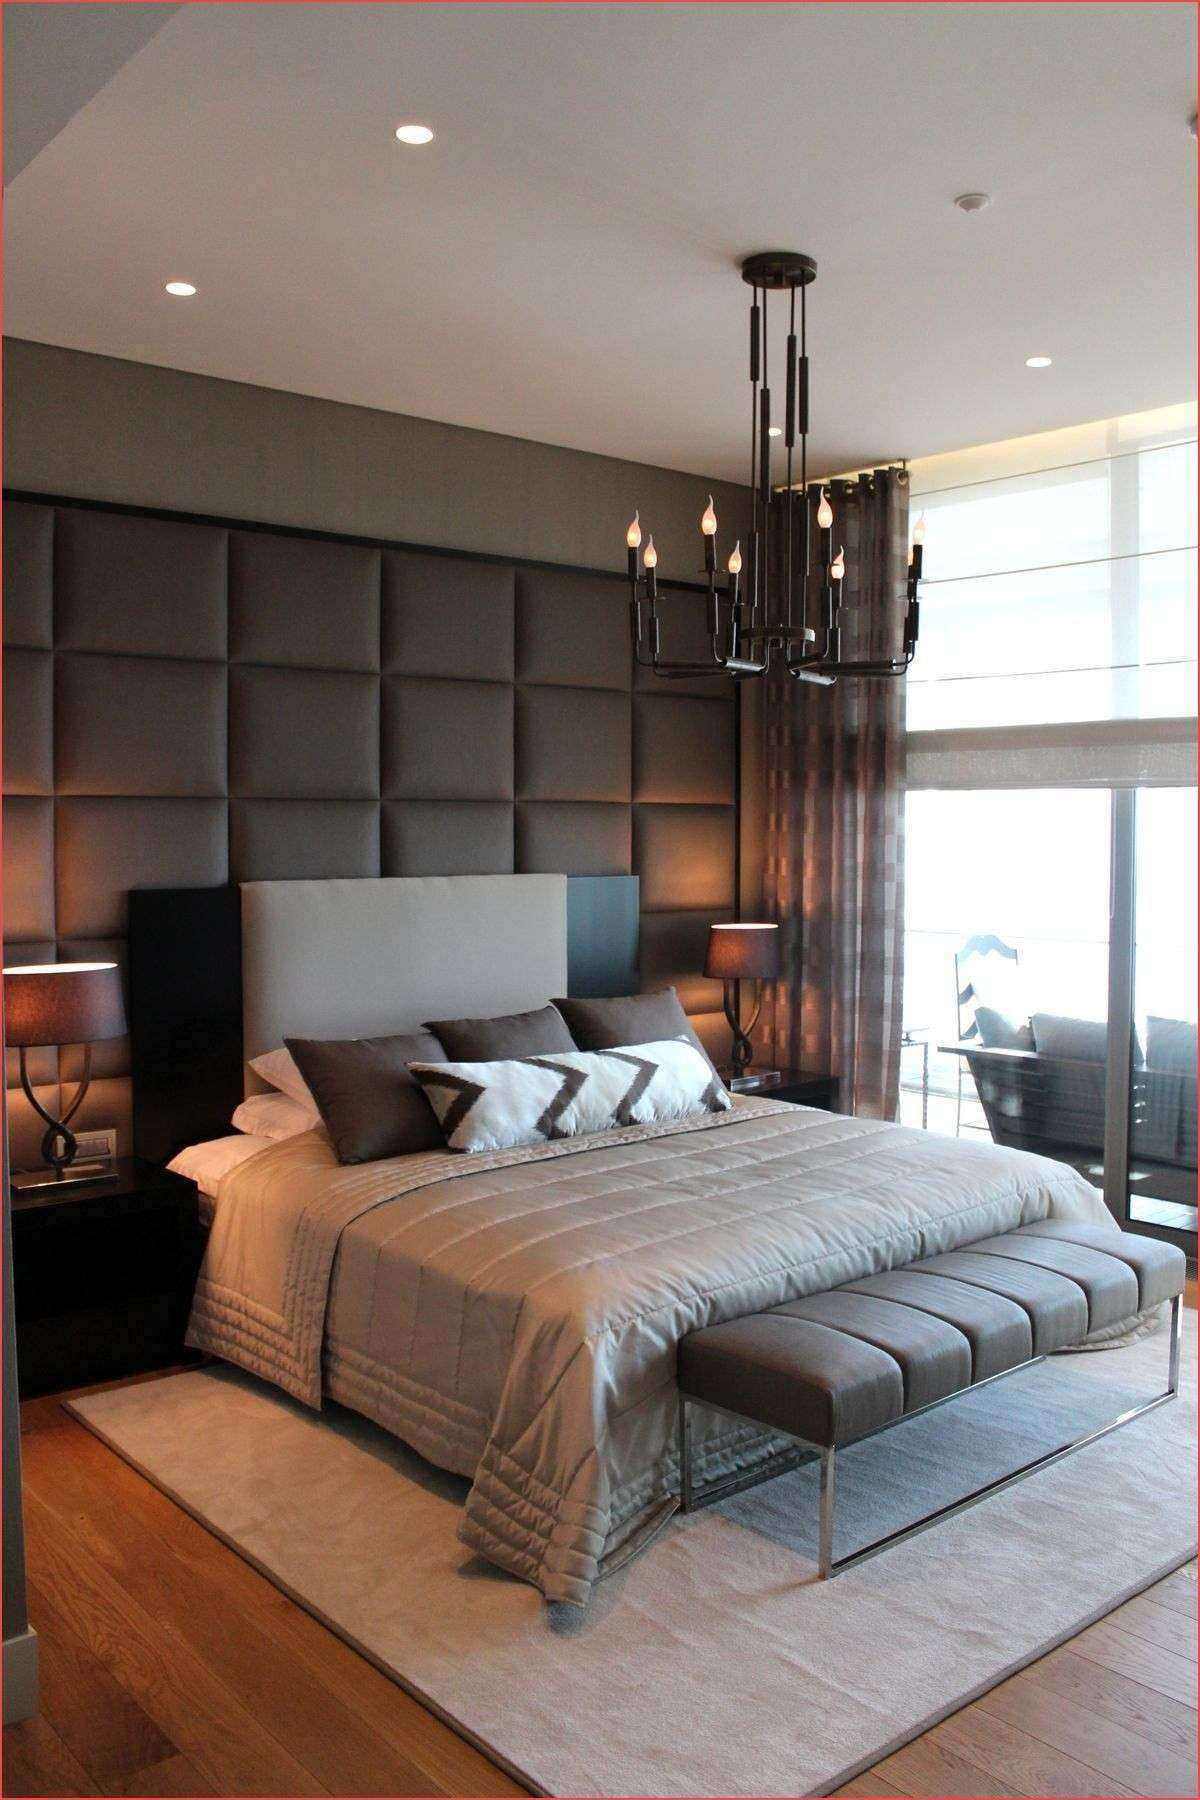 Western Bedroom Decor Lovely Best Bedroom Decor Ideas